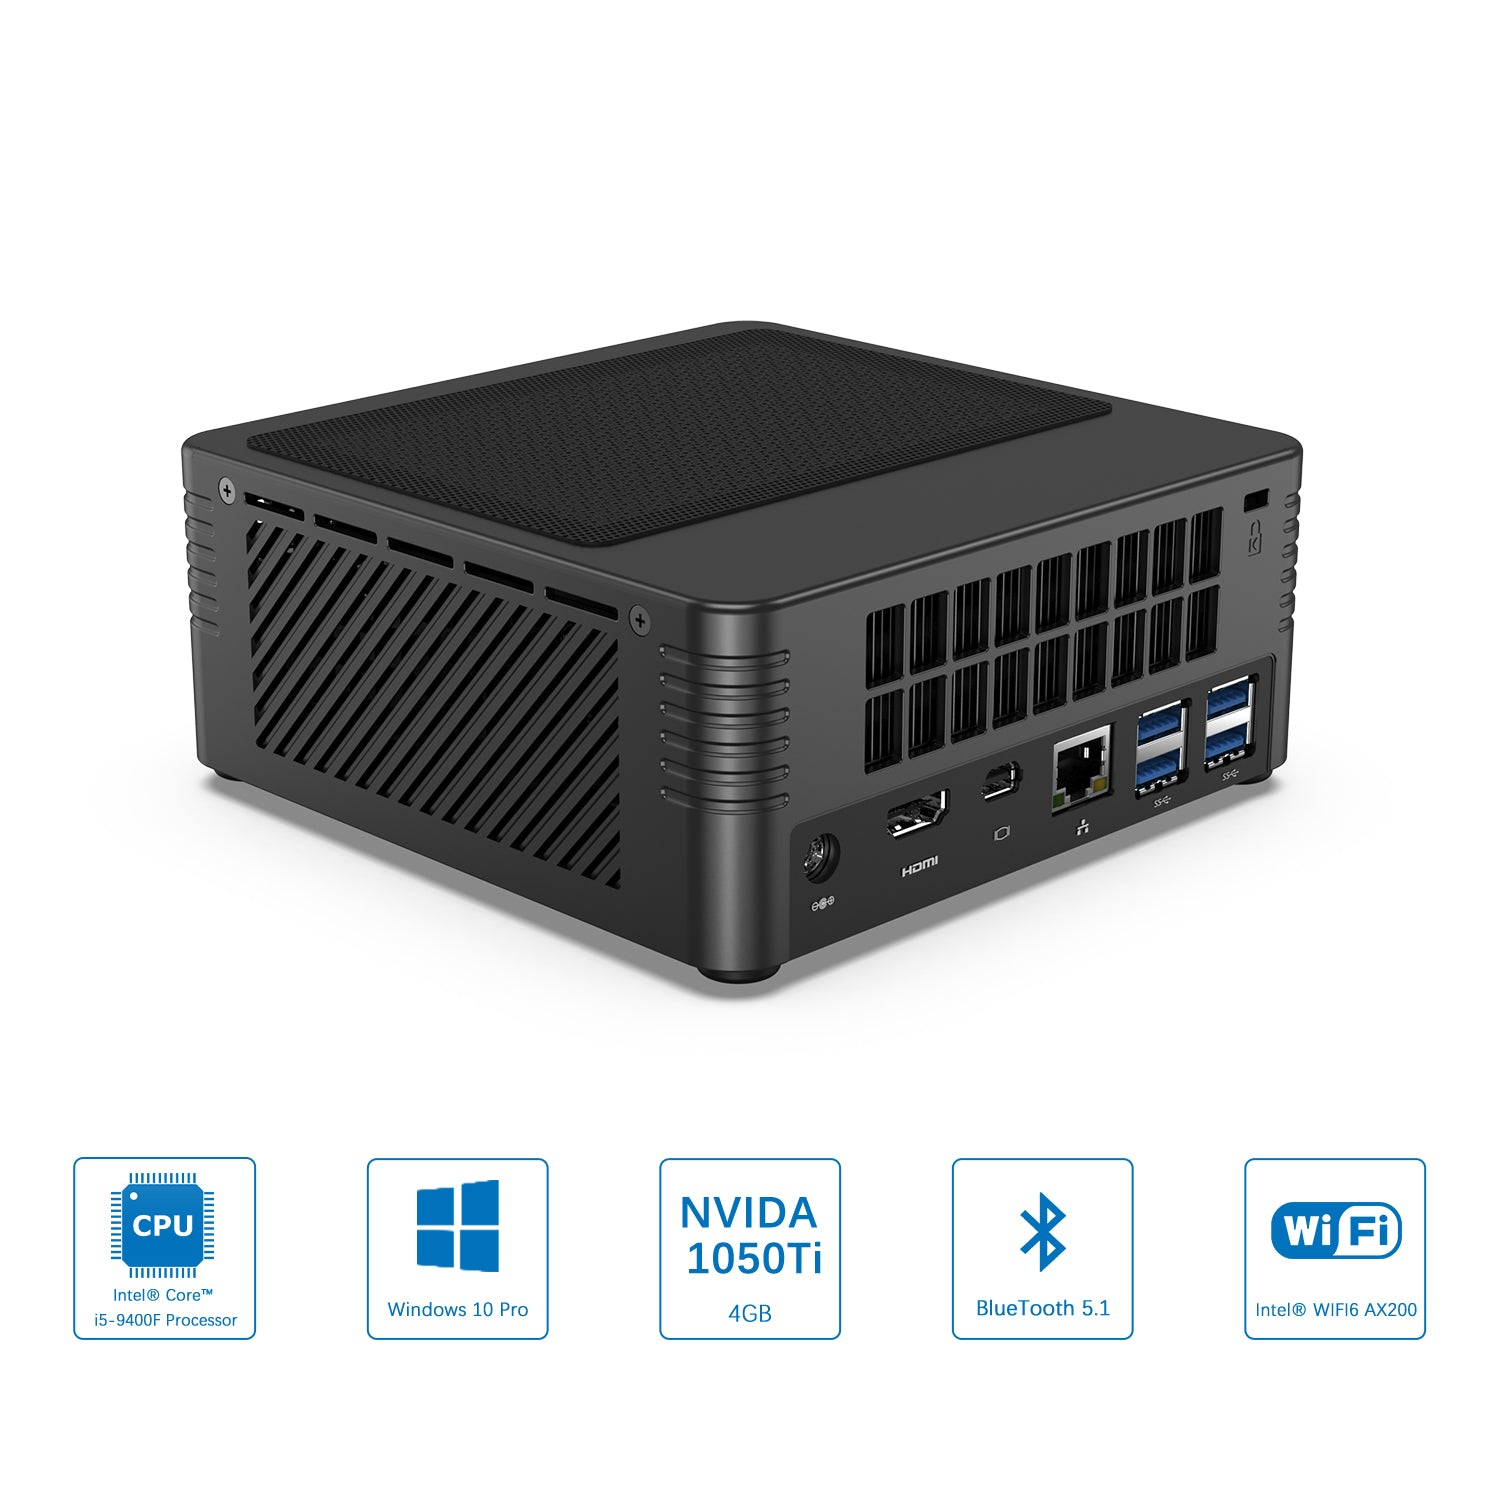 MinisForum EliteMini H31G Mini PC w/ NVidia 1050Ti showing features